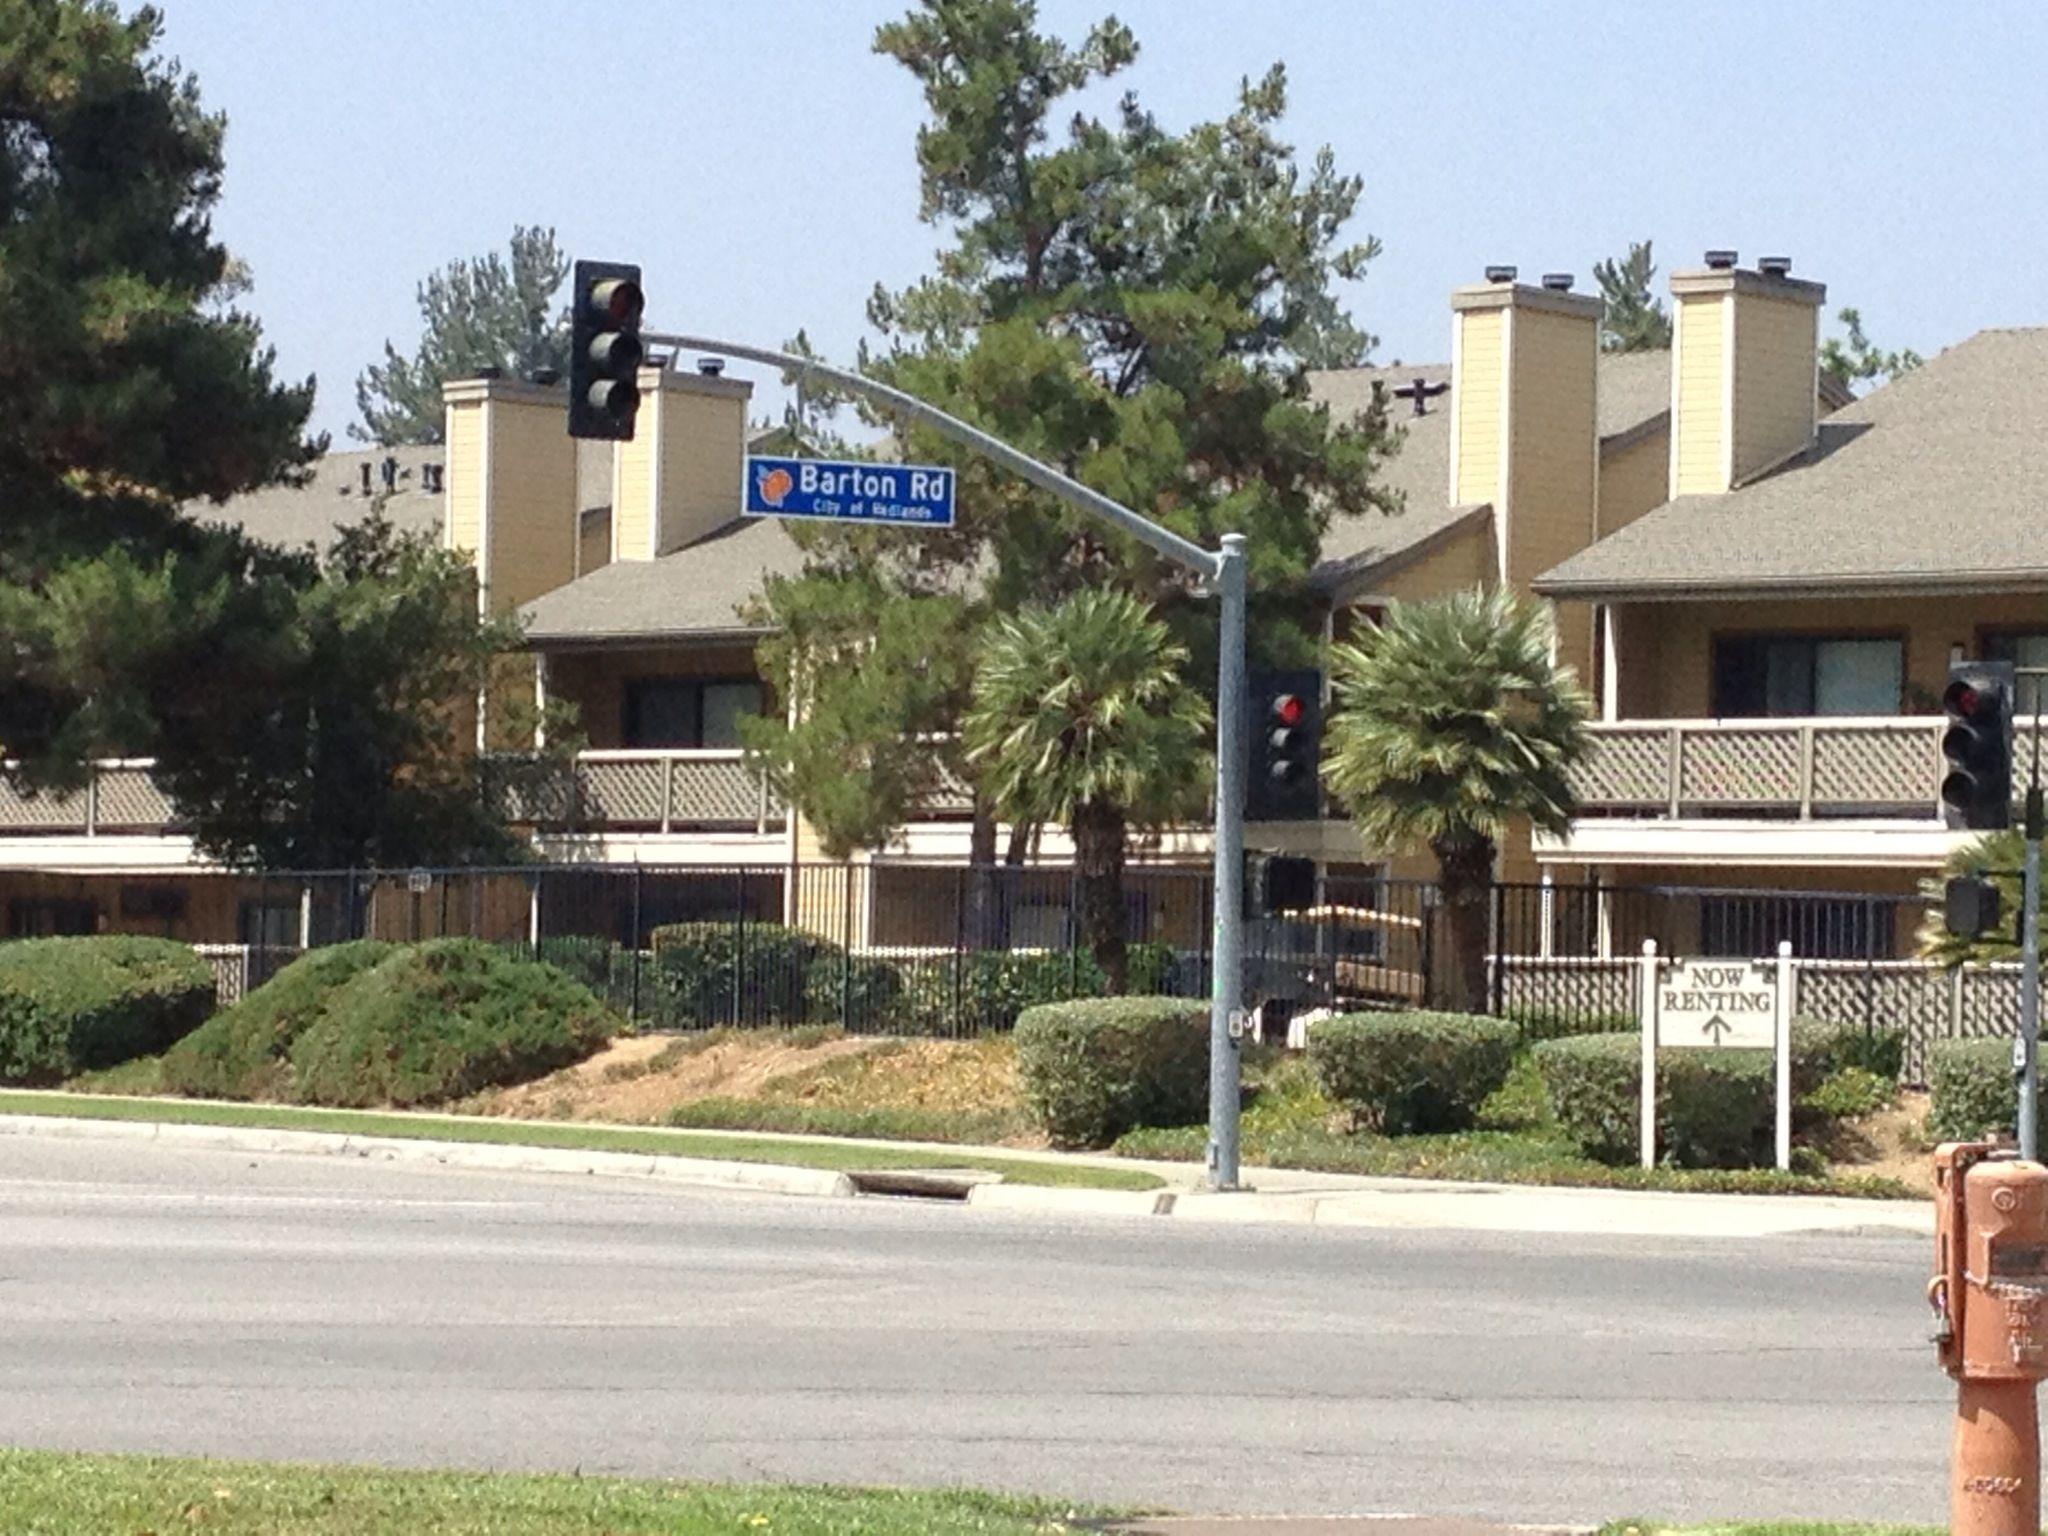 Barton Rd! Extended stay, House styles, Hotel offers